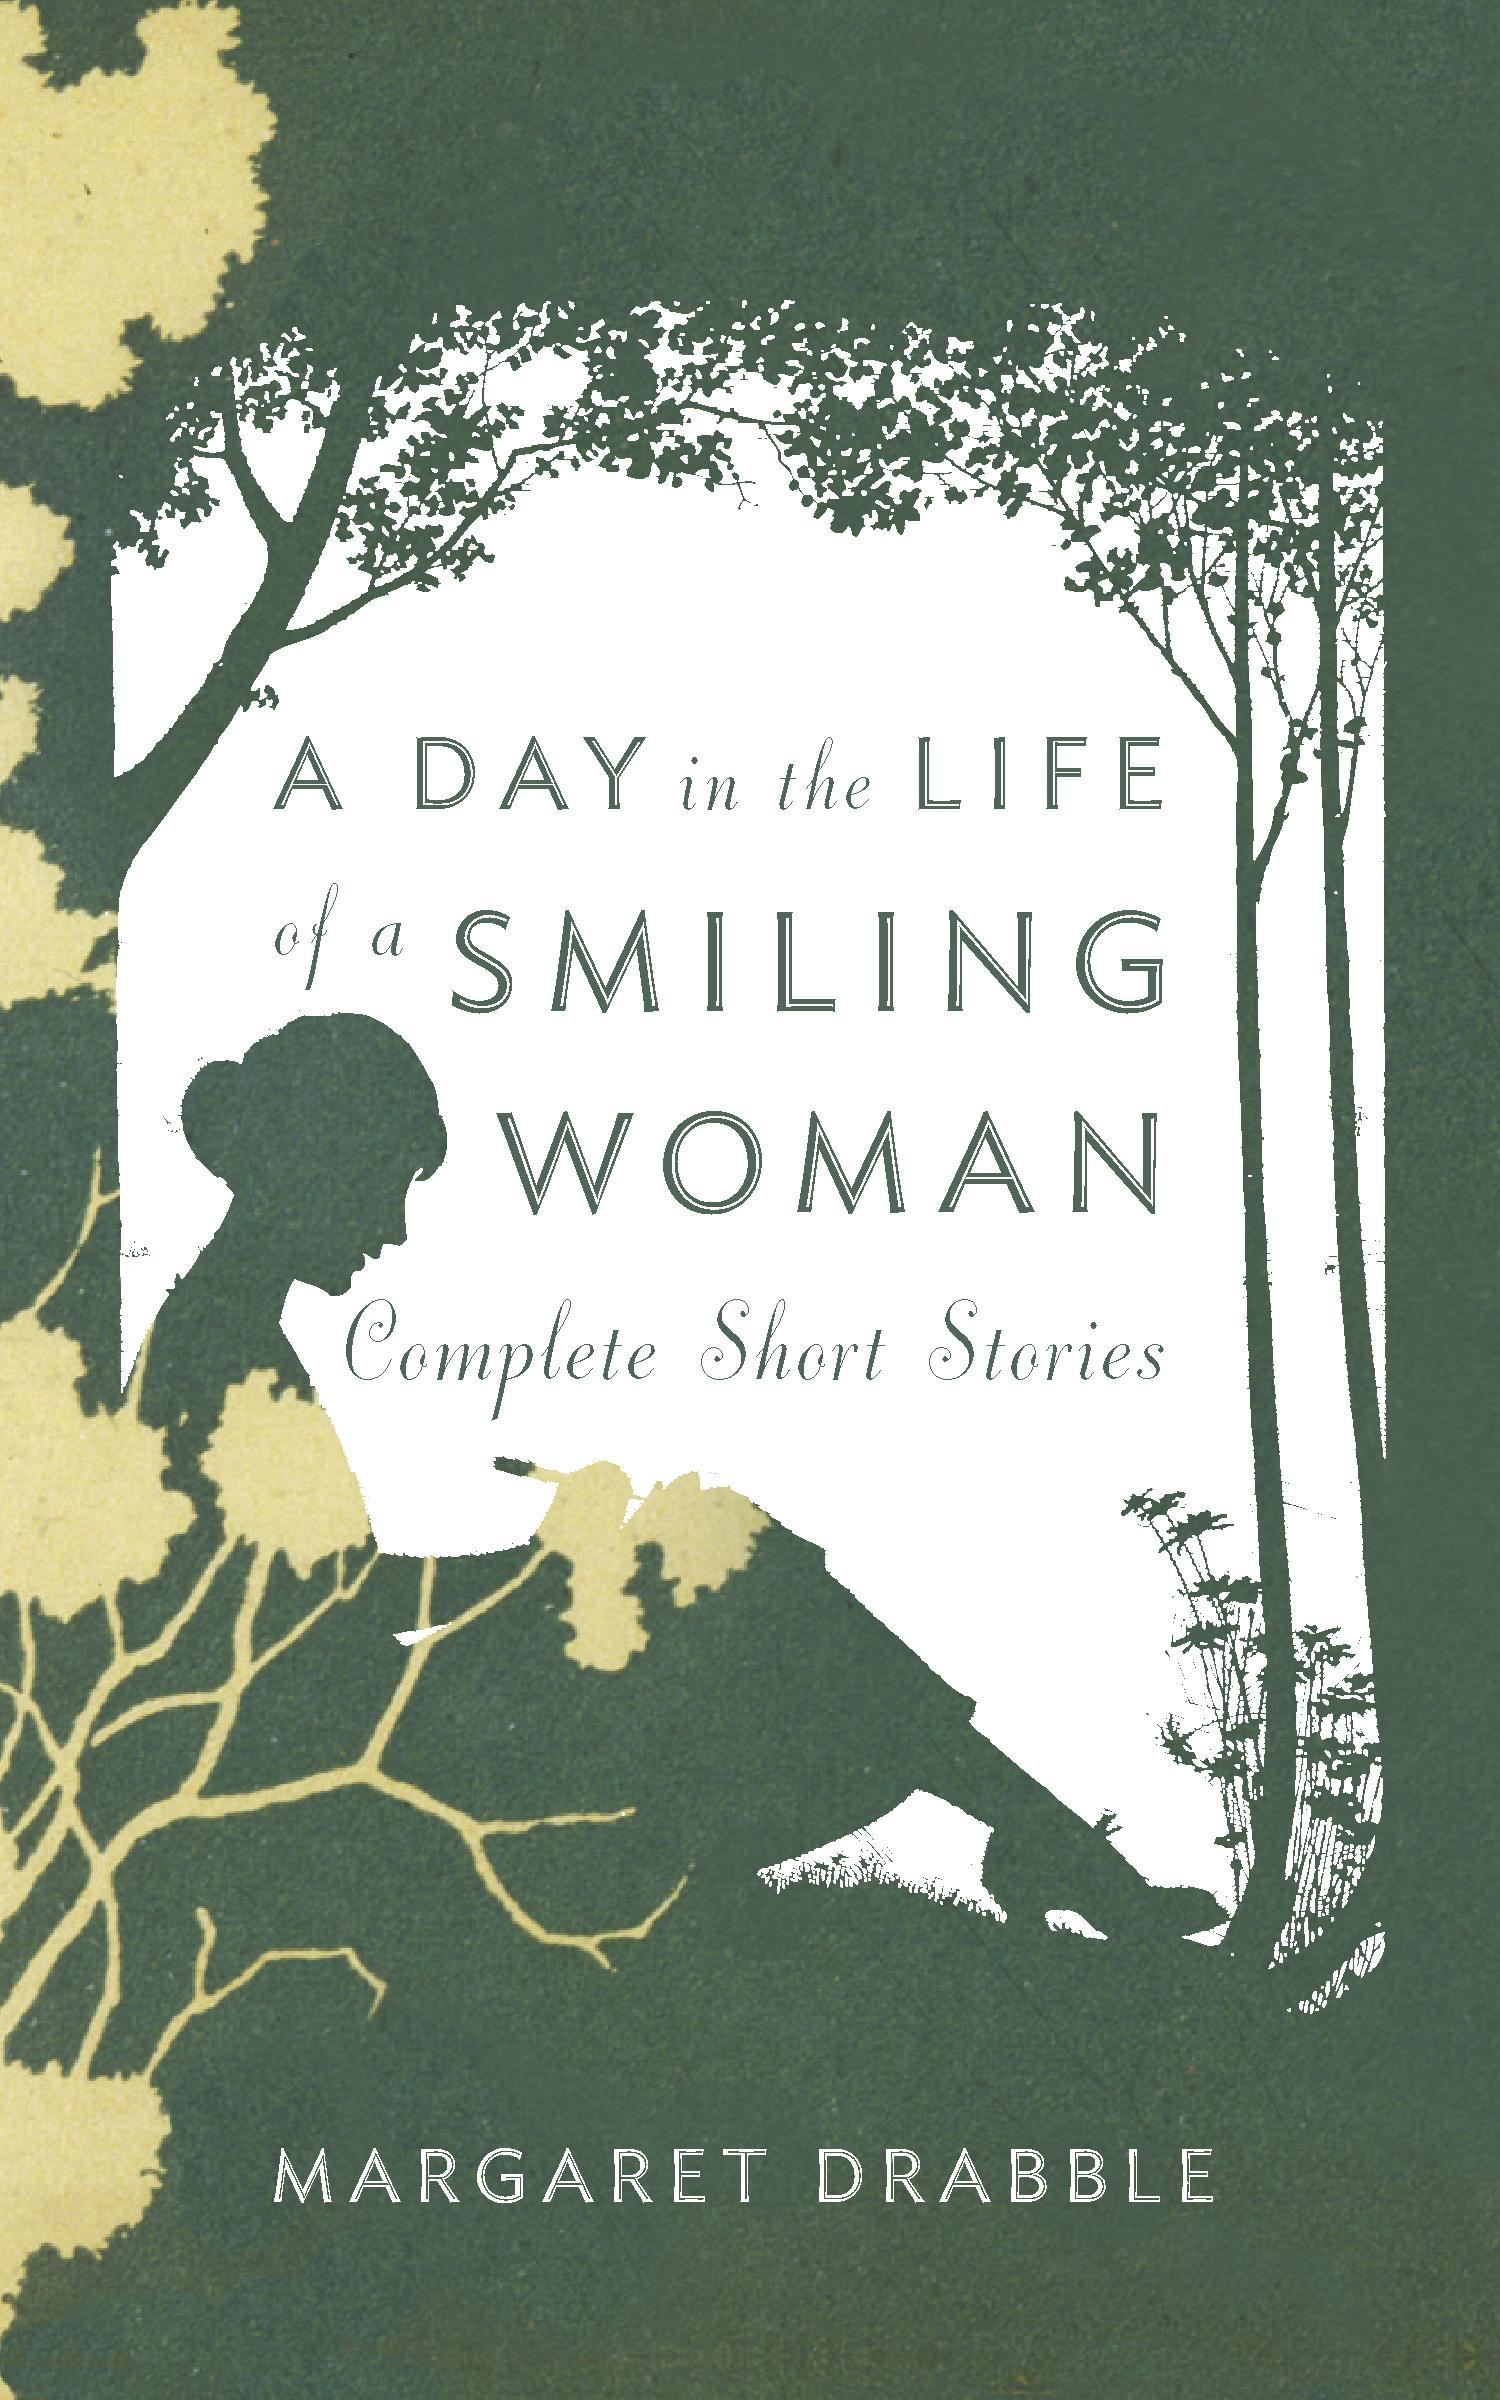 A Day in the Life of a Smiling Woman: Complete Short Stories By: Margaret Drabble